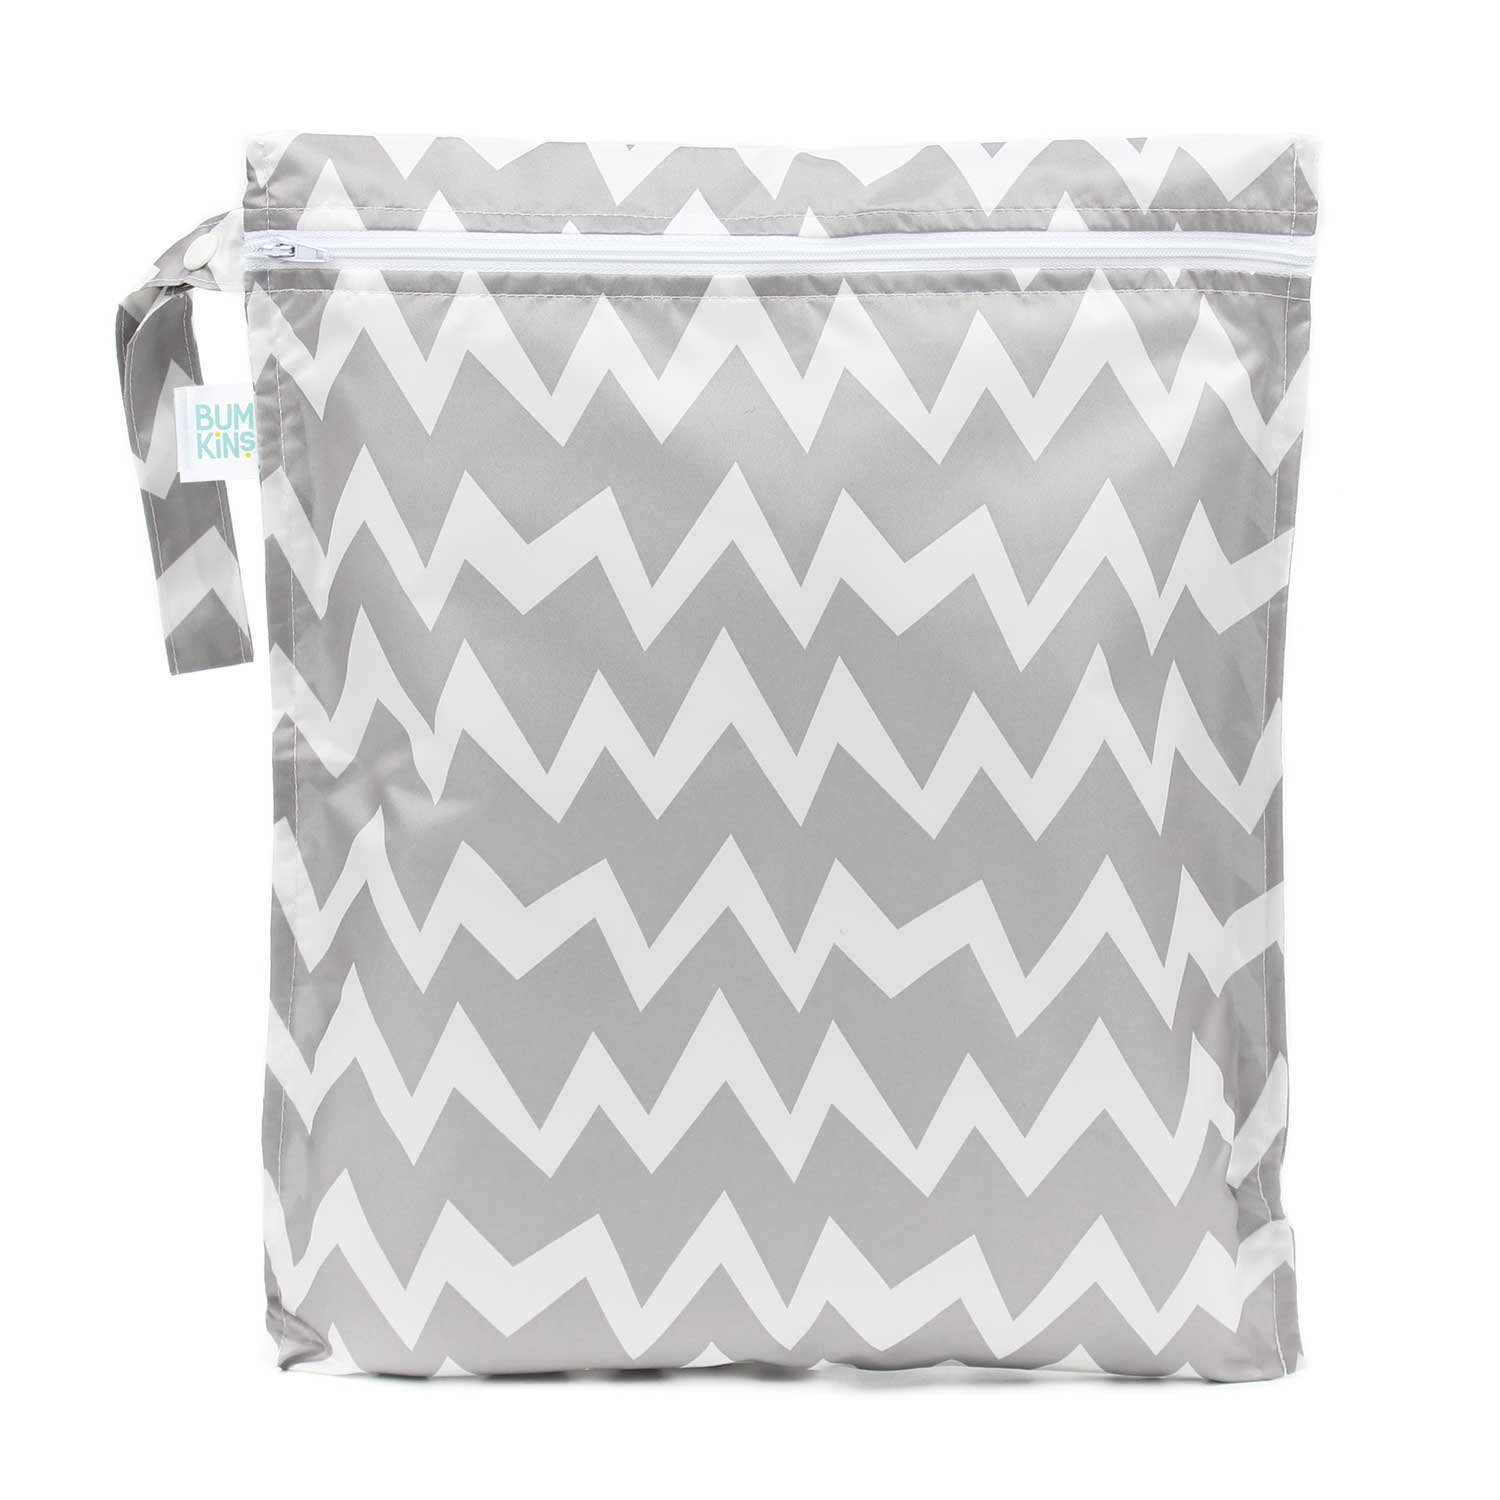 Bumkins Zippered Wet Bag, Gray Chevron WB-501